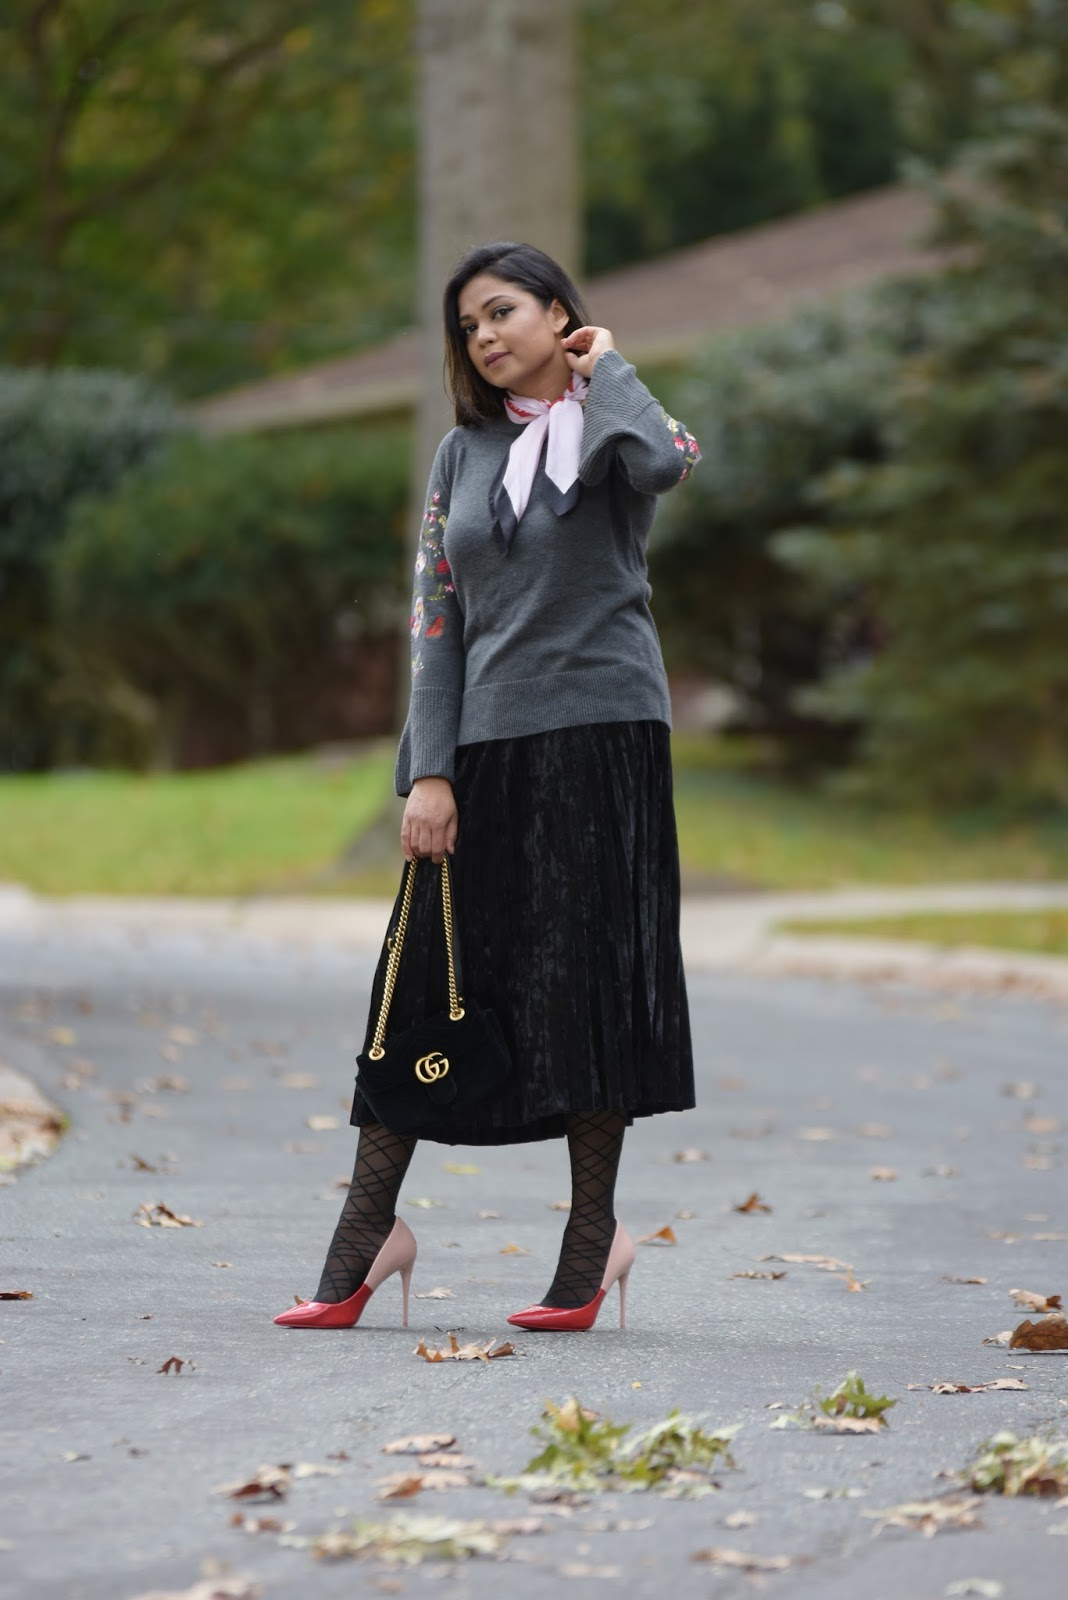 How to wear velvet this season, fall fashion, velvet pleated skirt, gray bell sleeve sweater, embroidered sweater, fashion, street style, myriad musings